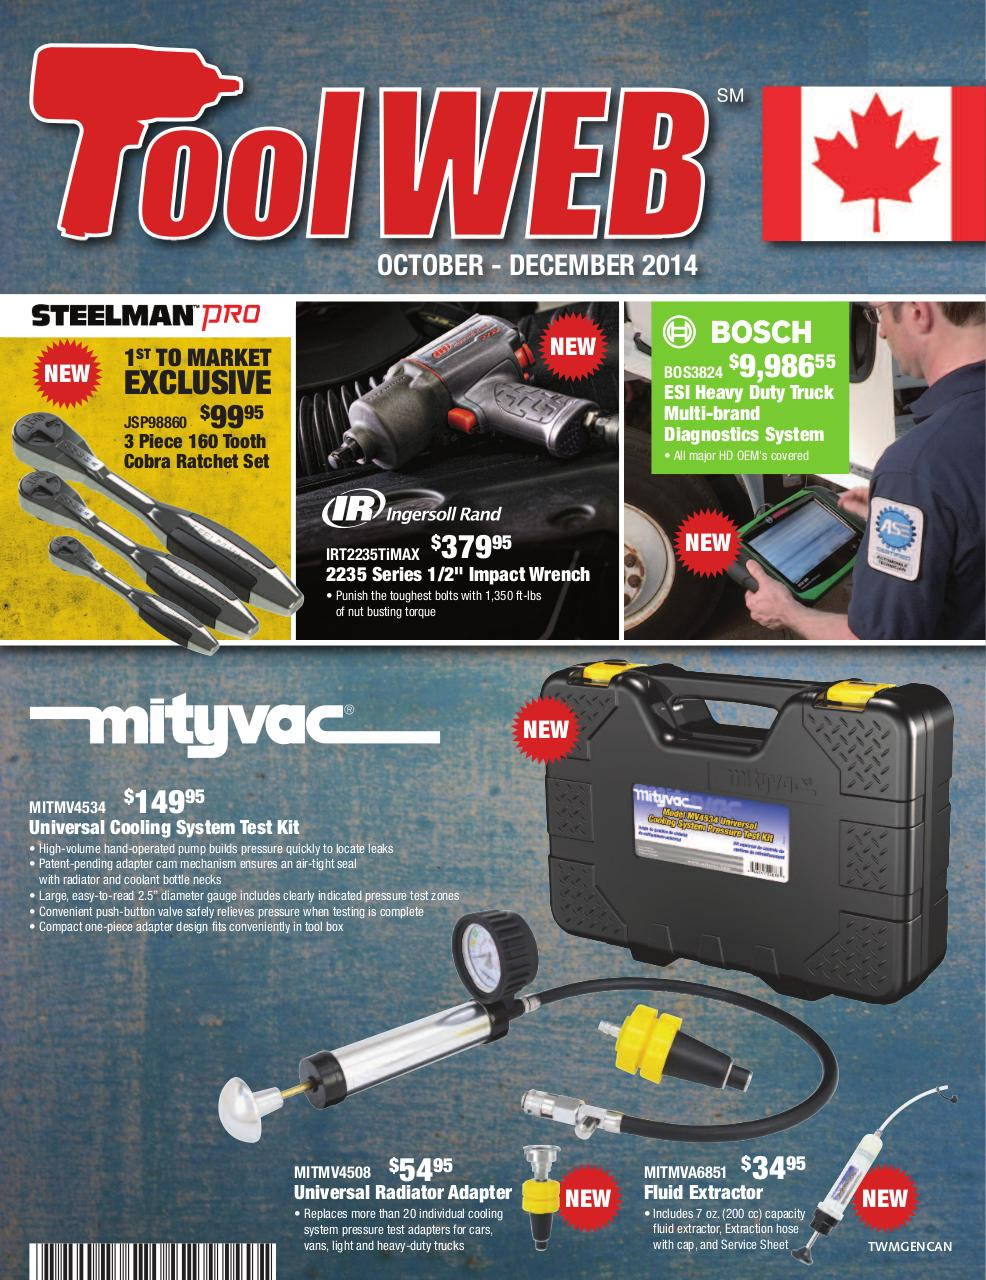 Aperçu du document Q4 Oct-Dec 2014 ToolWEB - Canada.pdf - page 1/180